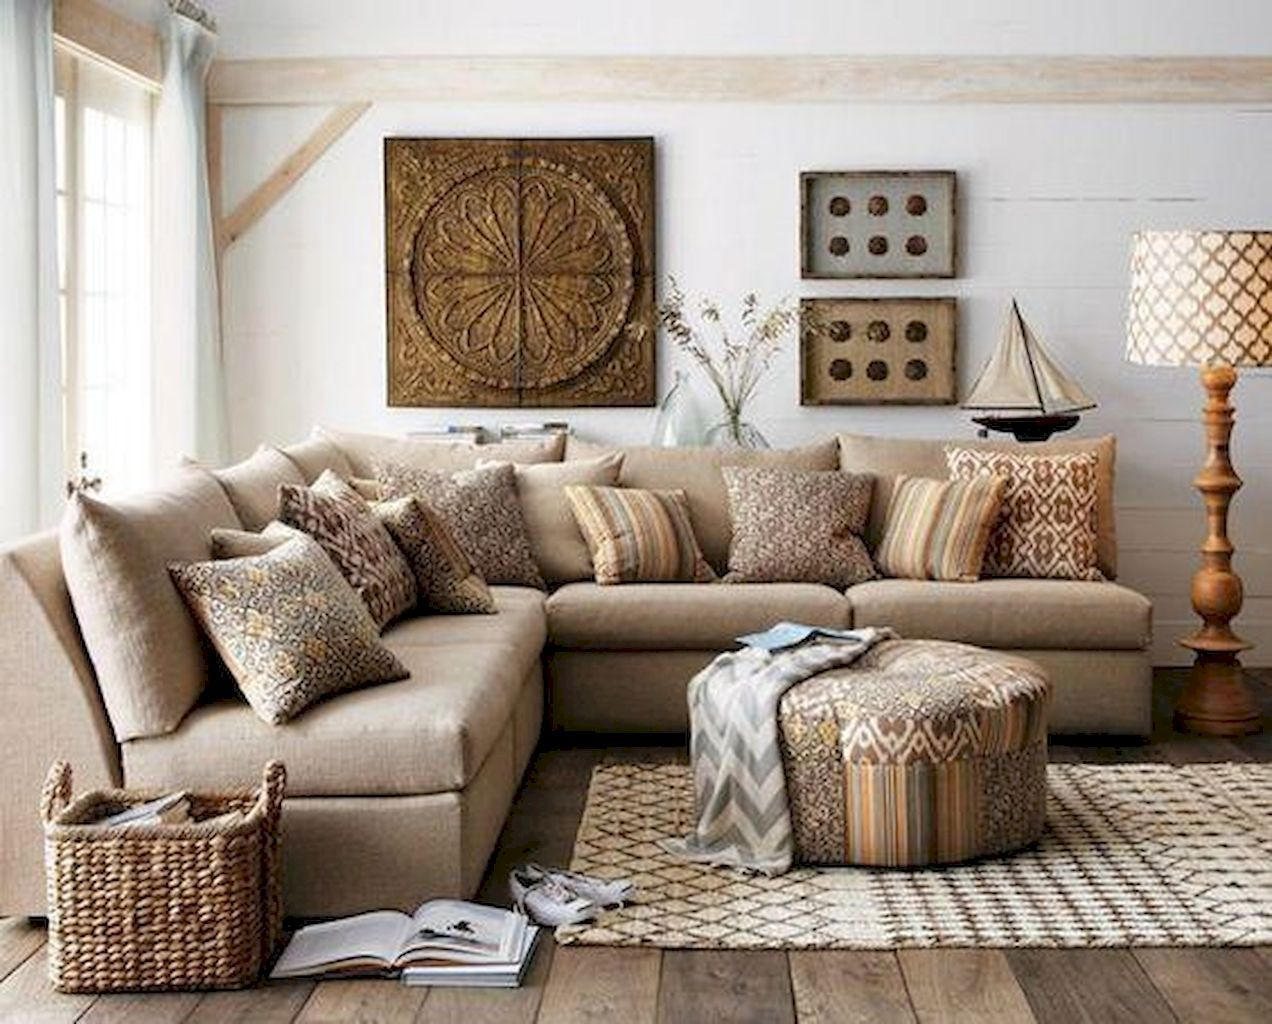 Cuscini Su Divano Marrone stunning 60 cozy modern farmhouse living room decor ideas